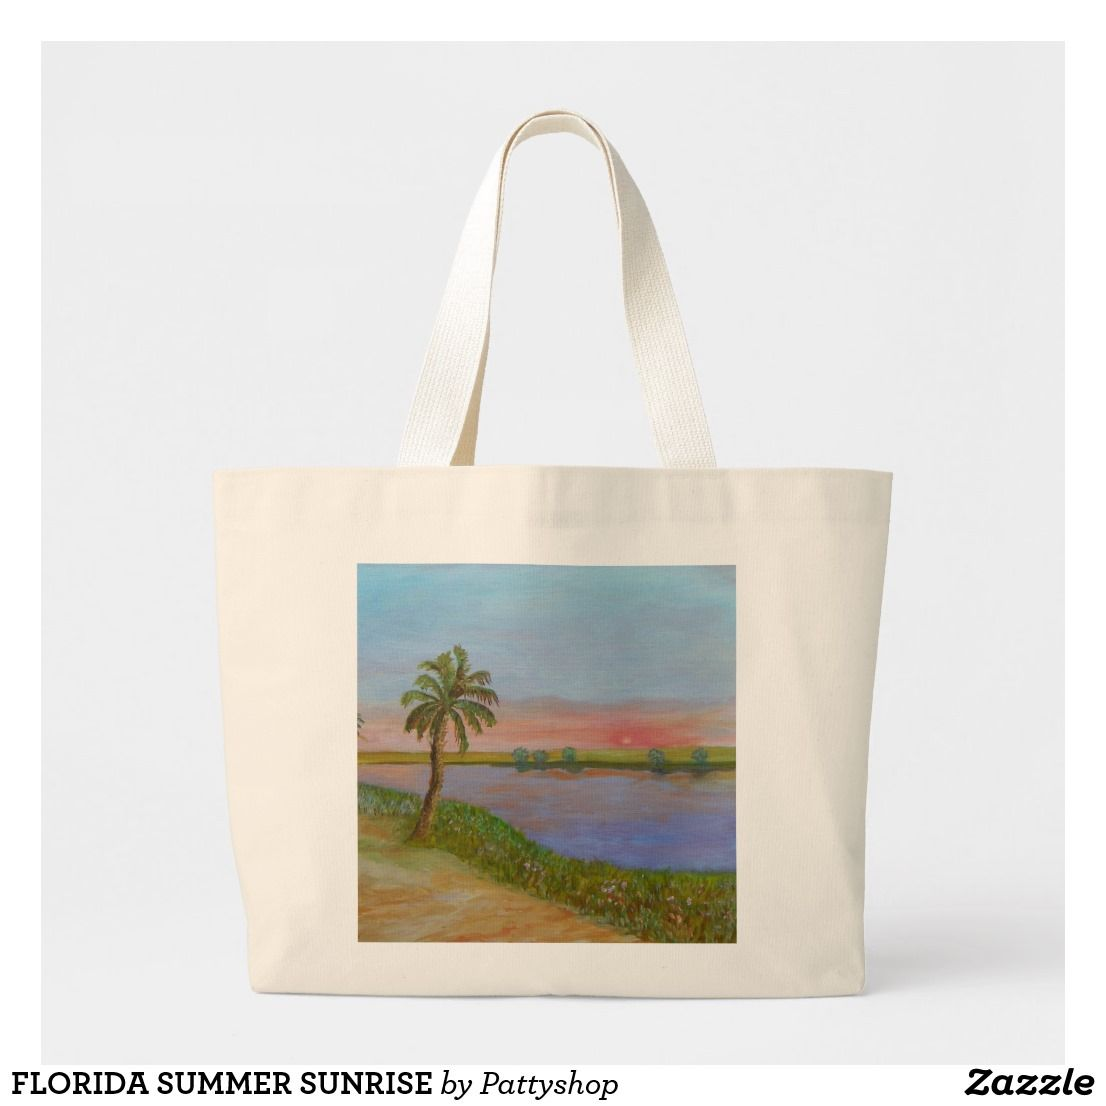 FLORIDA SUMMER SUNRISE LARGE TOTE BAG